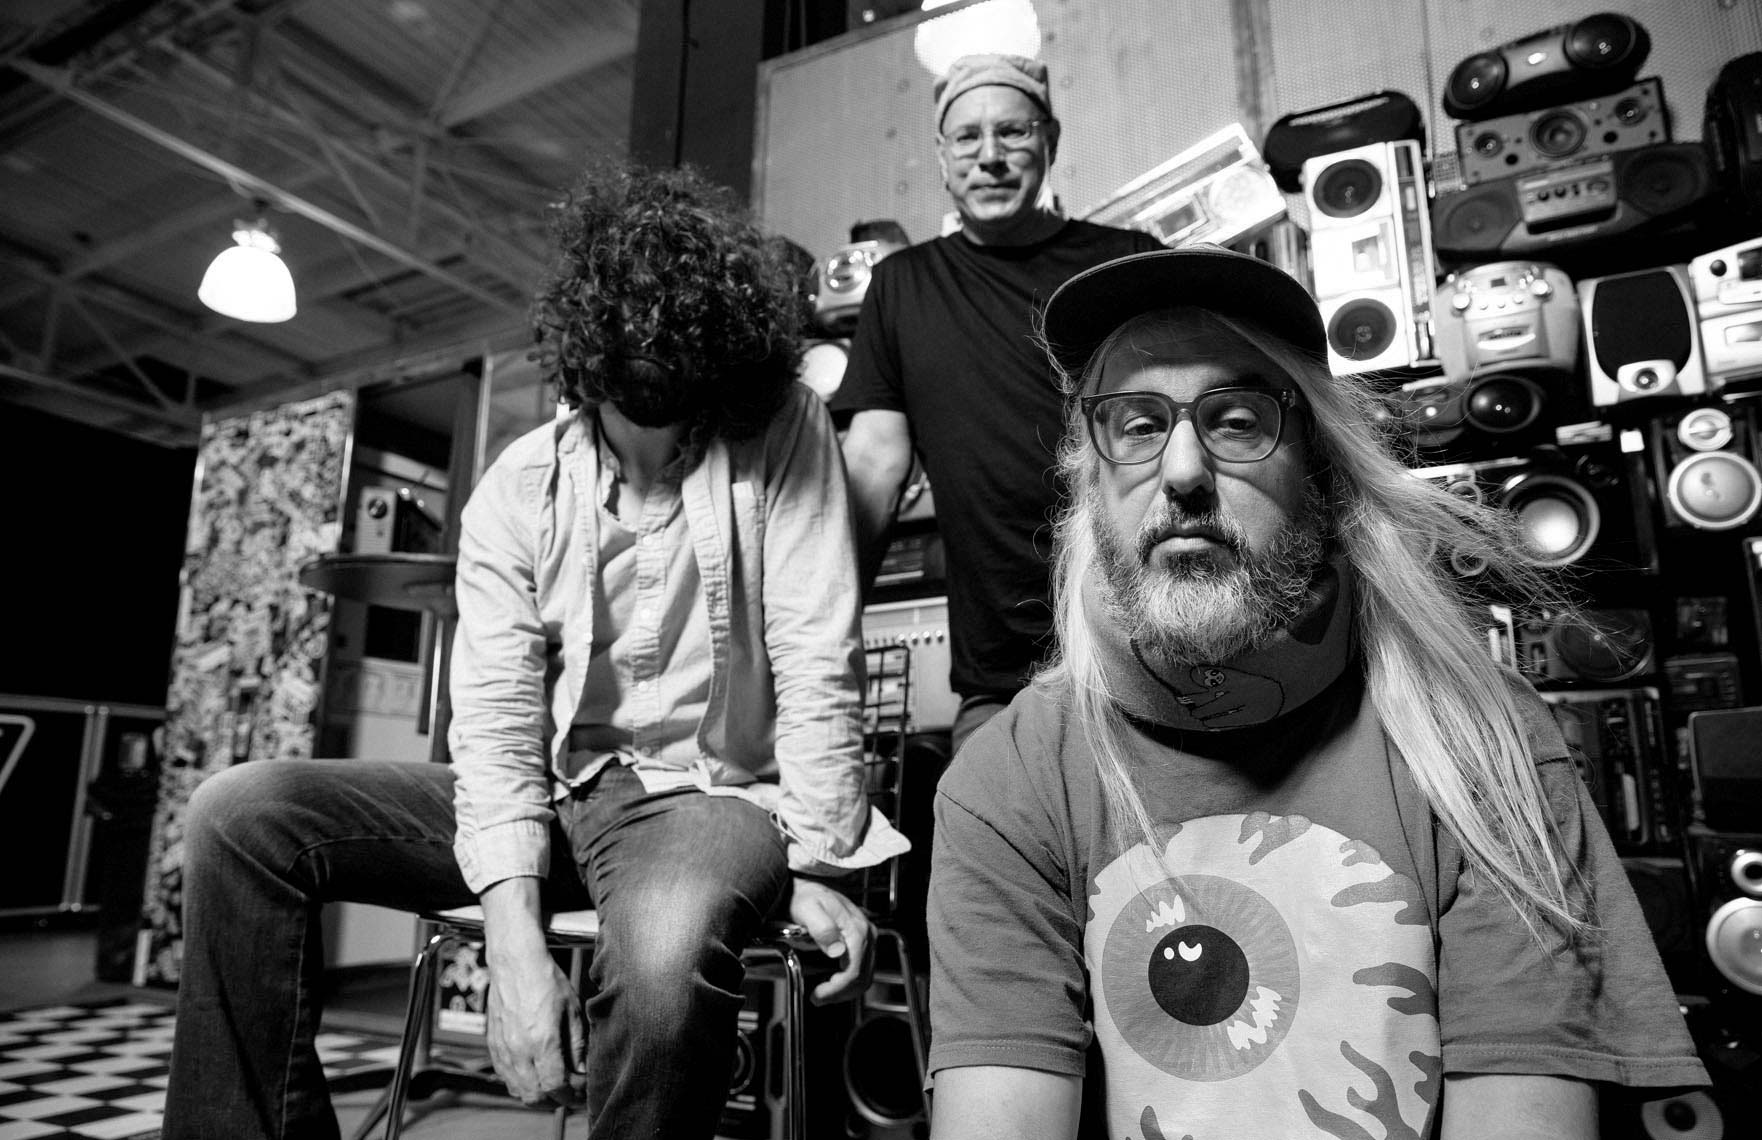 Dinosaur Jr. black and white portrait at Vans skatepark